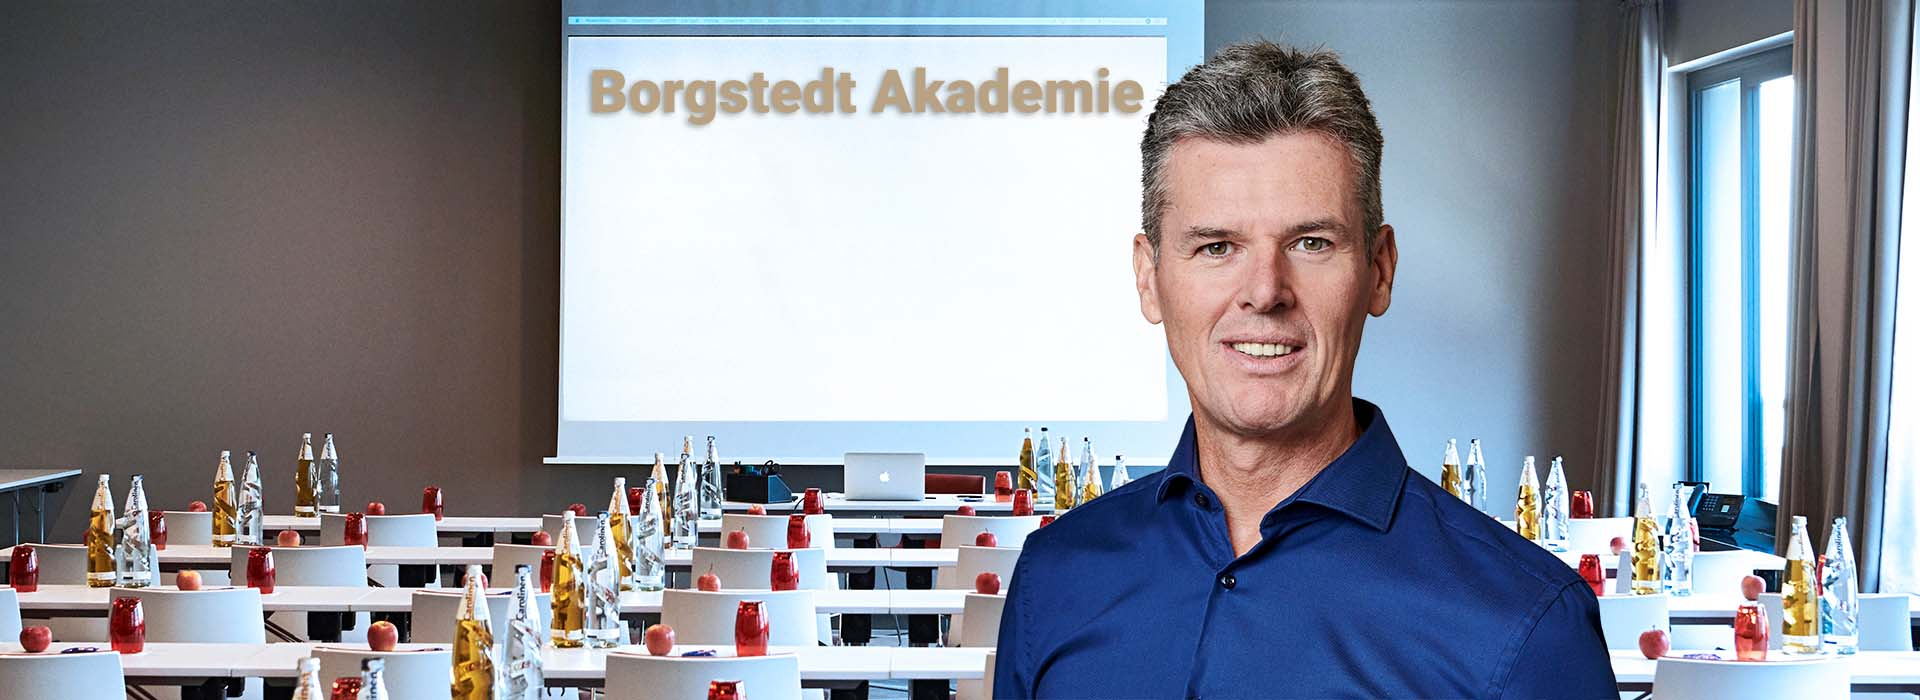 akademie-start-head1-michael-borgstedt